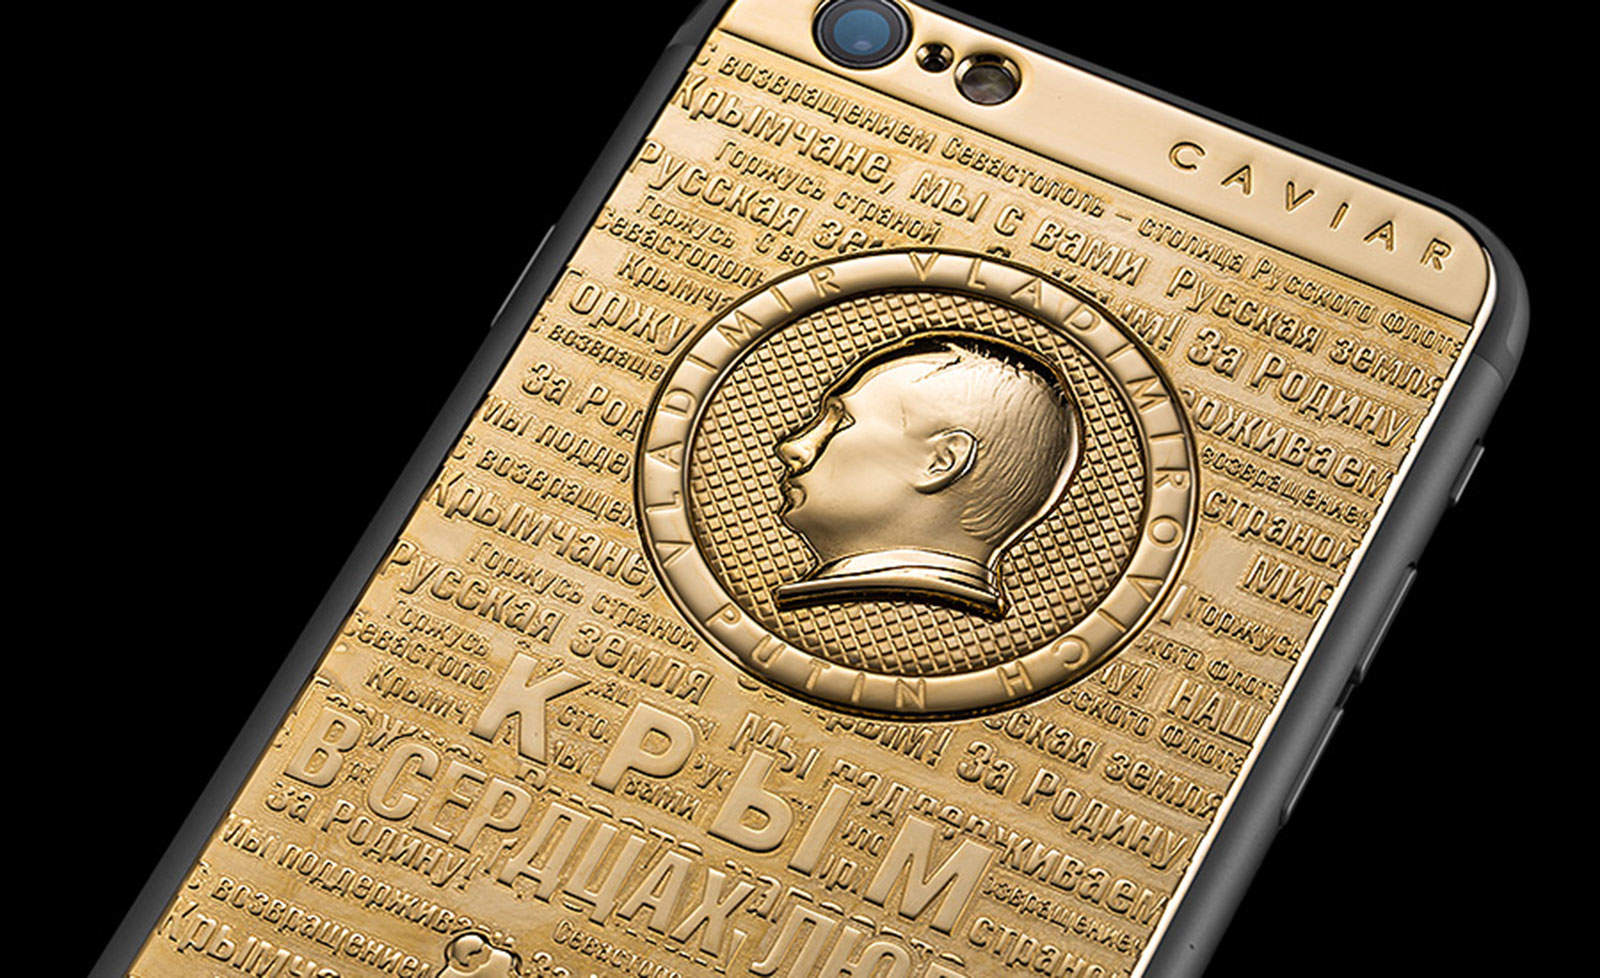 Putin adds power to your iPhone case.